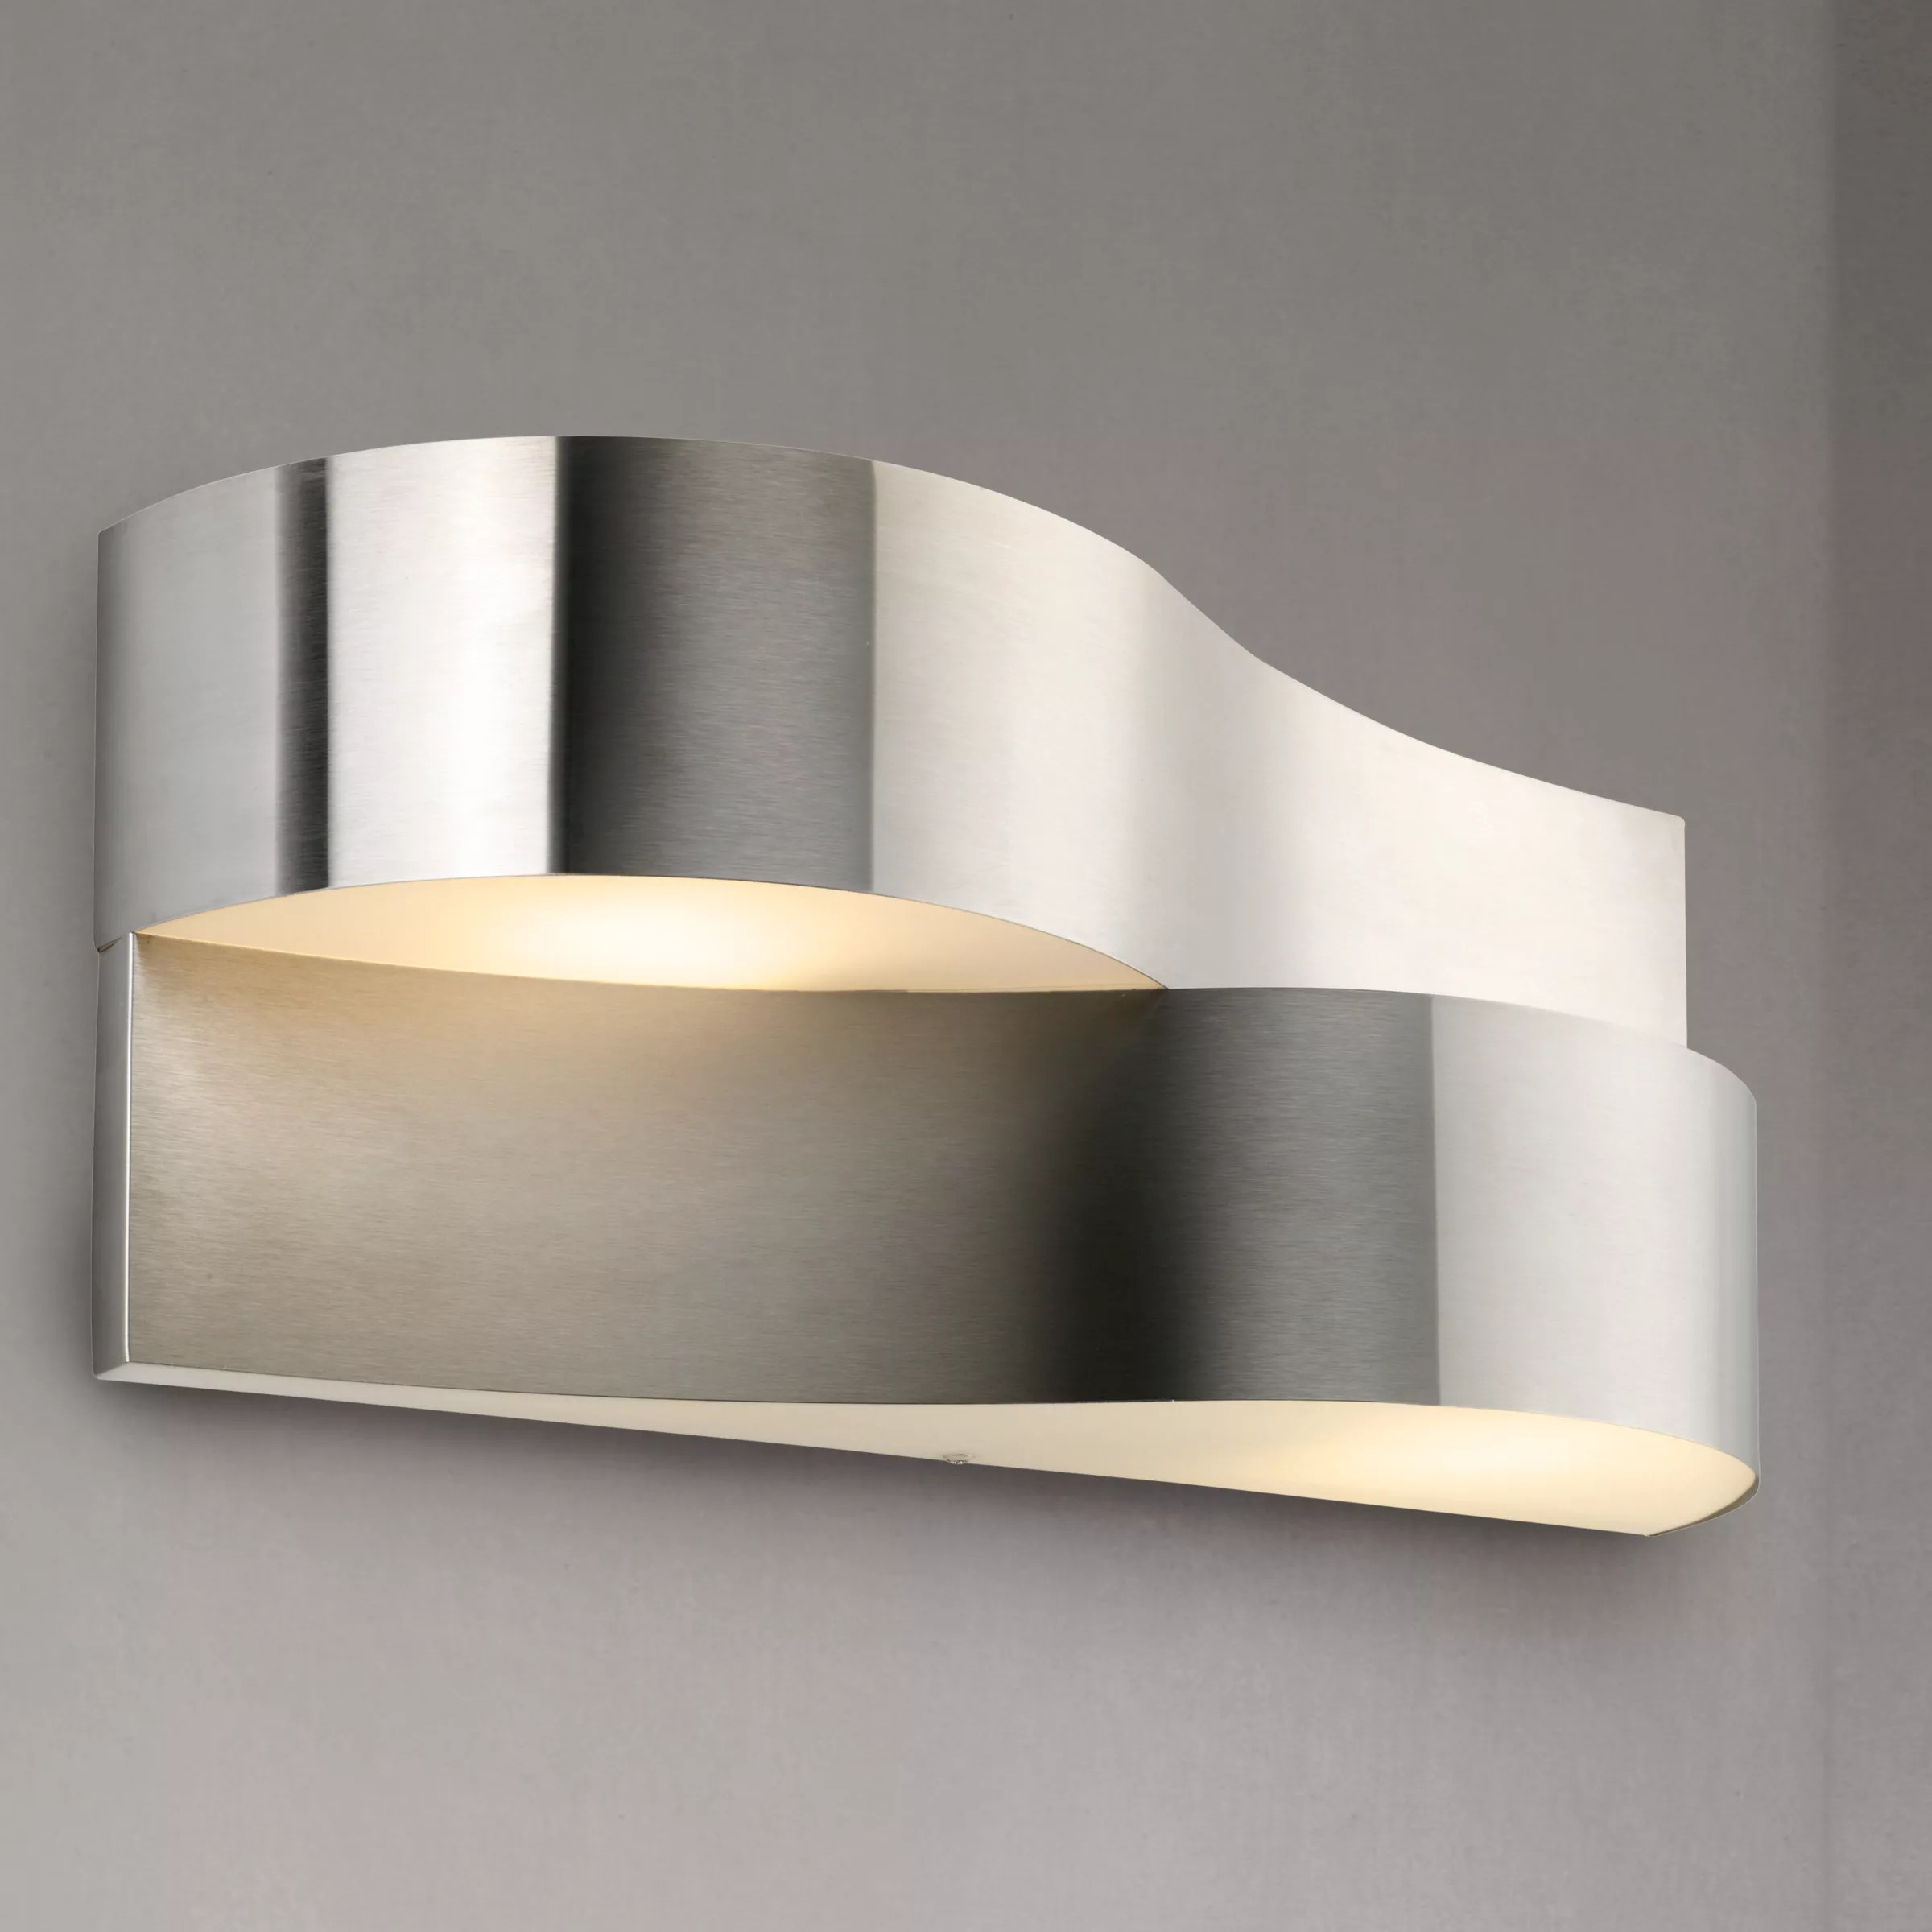 Philips Ecomoods Philips Ecomoods Oriole Outdoor Wall Light At John Lewis Partners